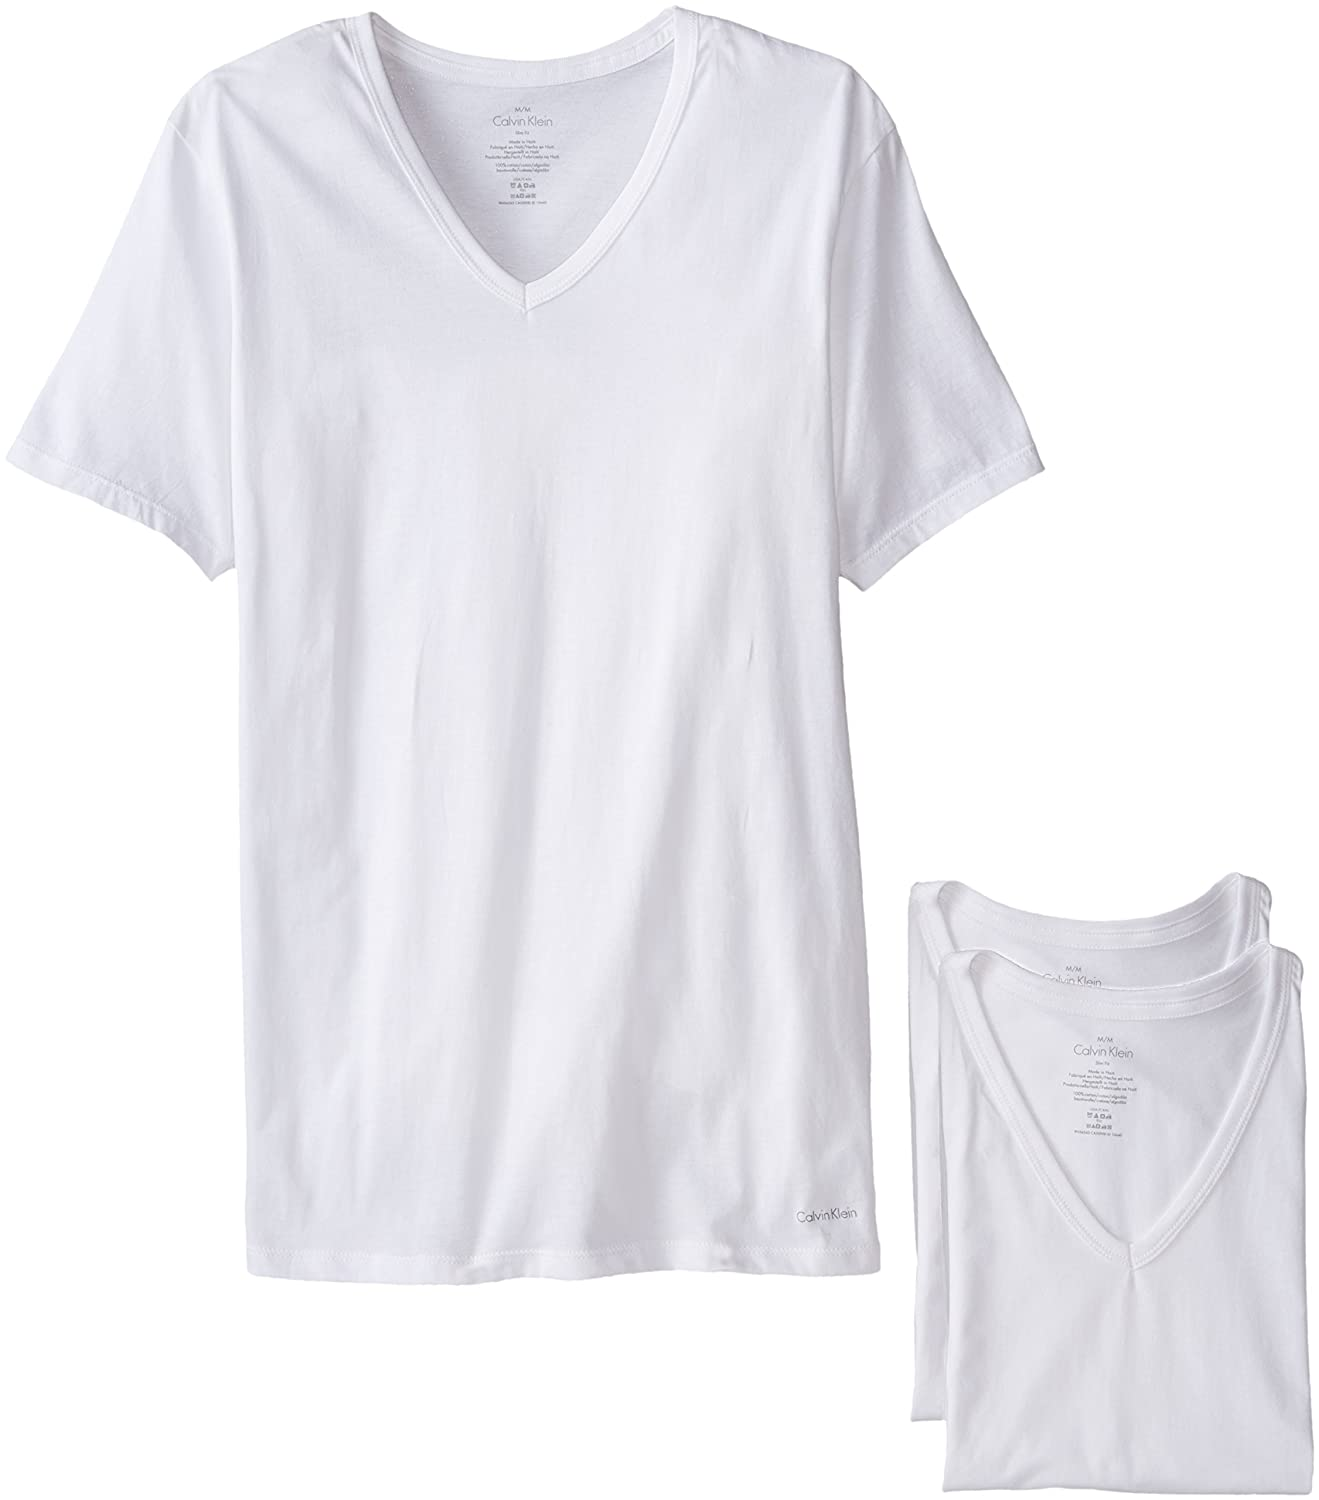 Calvin Klein Men's 3-Pack Cotton Classics Slim Fit V-Neck T-Shirt NB1177